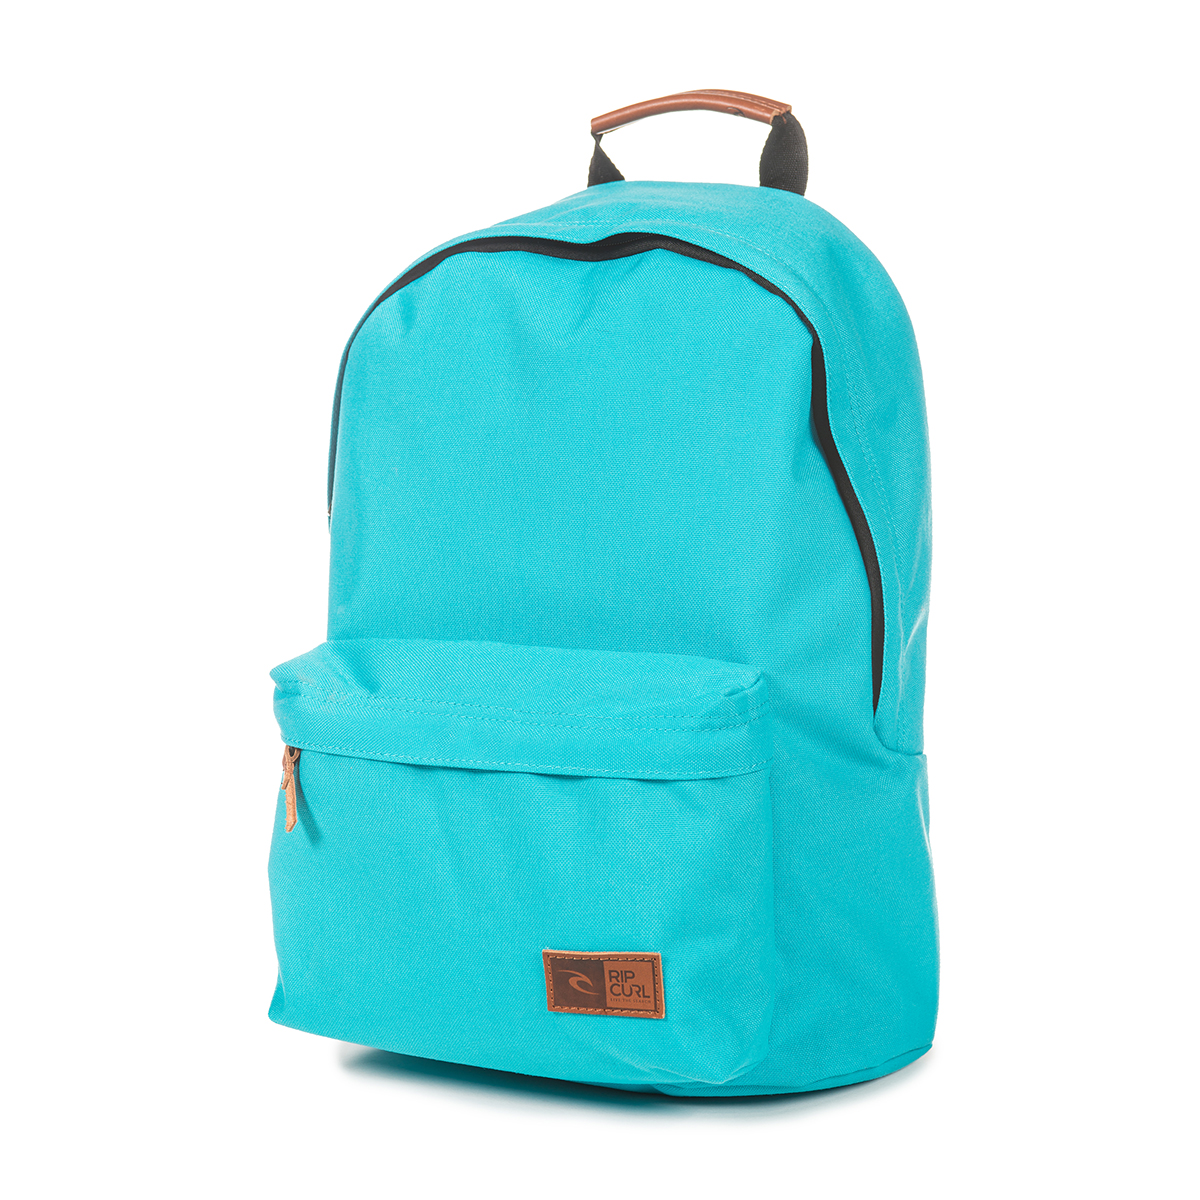 Sac à dos Rip Curl Commuter D.Dome Red rouge gTpKDqHiRc